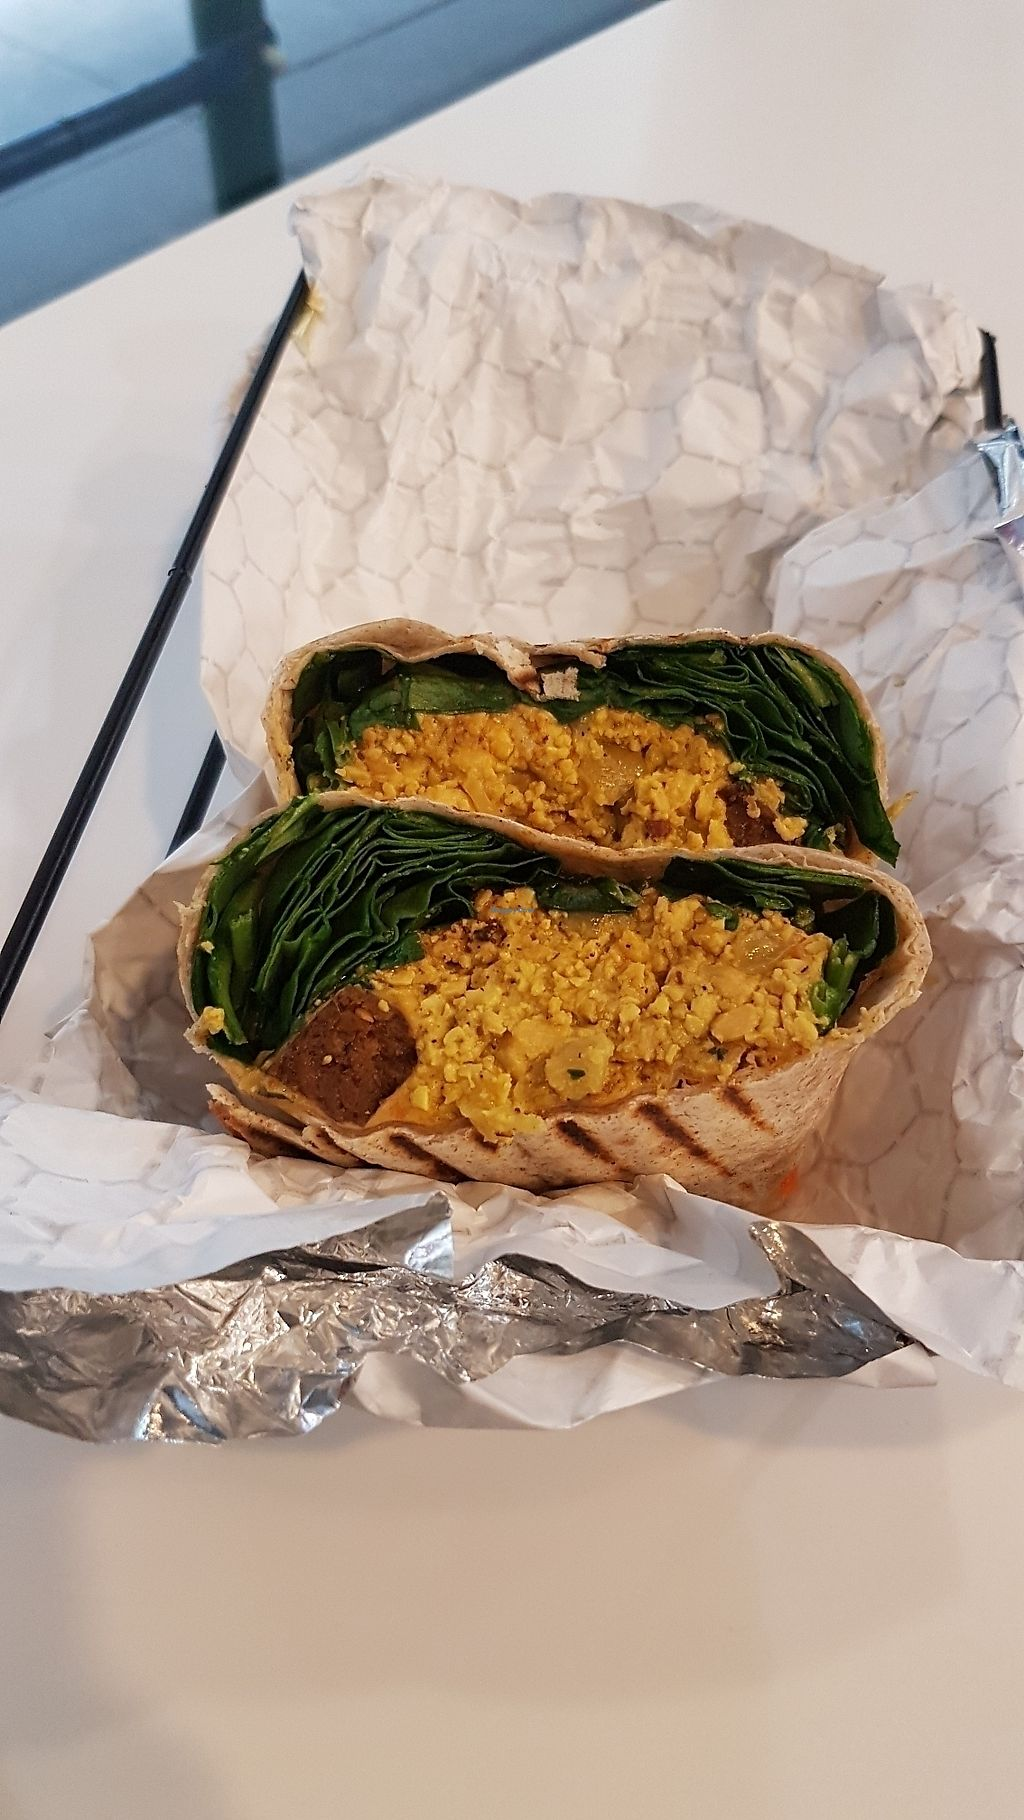 """Photo of Terri - Financial District  by <a href=""""/members/profile/NYCveganguide"""">NYCveganguide</a> <br/>breast burrito <br/> July 6, 2017  - <a href='/contact/abuse/image/37685/277245'>Report</a>"""